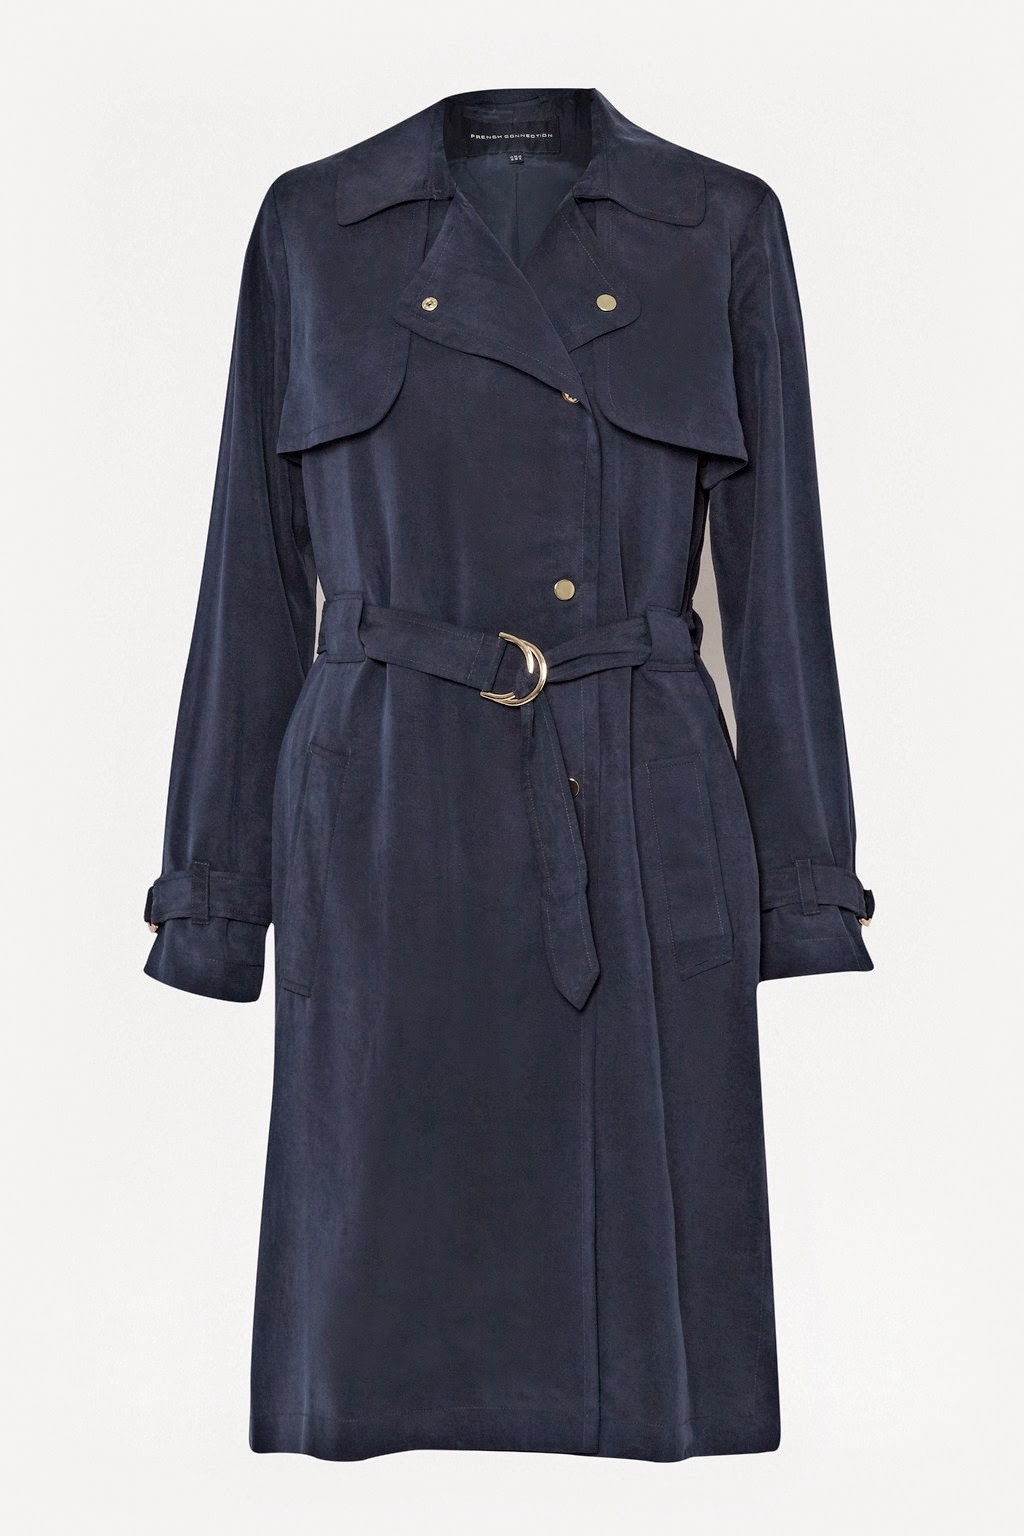 french connection navy mac, french connection navy trenchcoat,